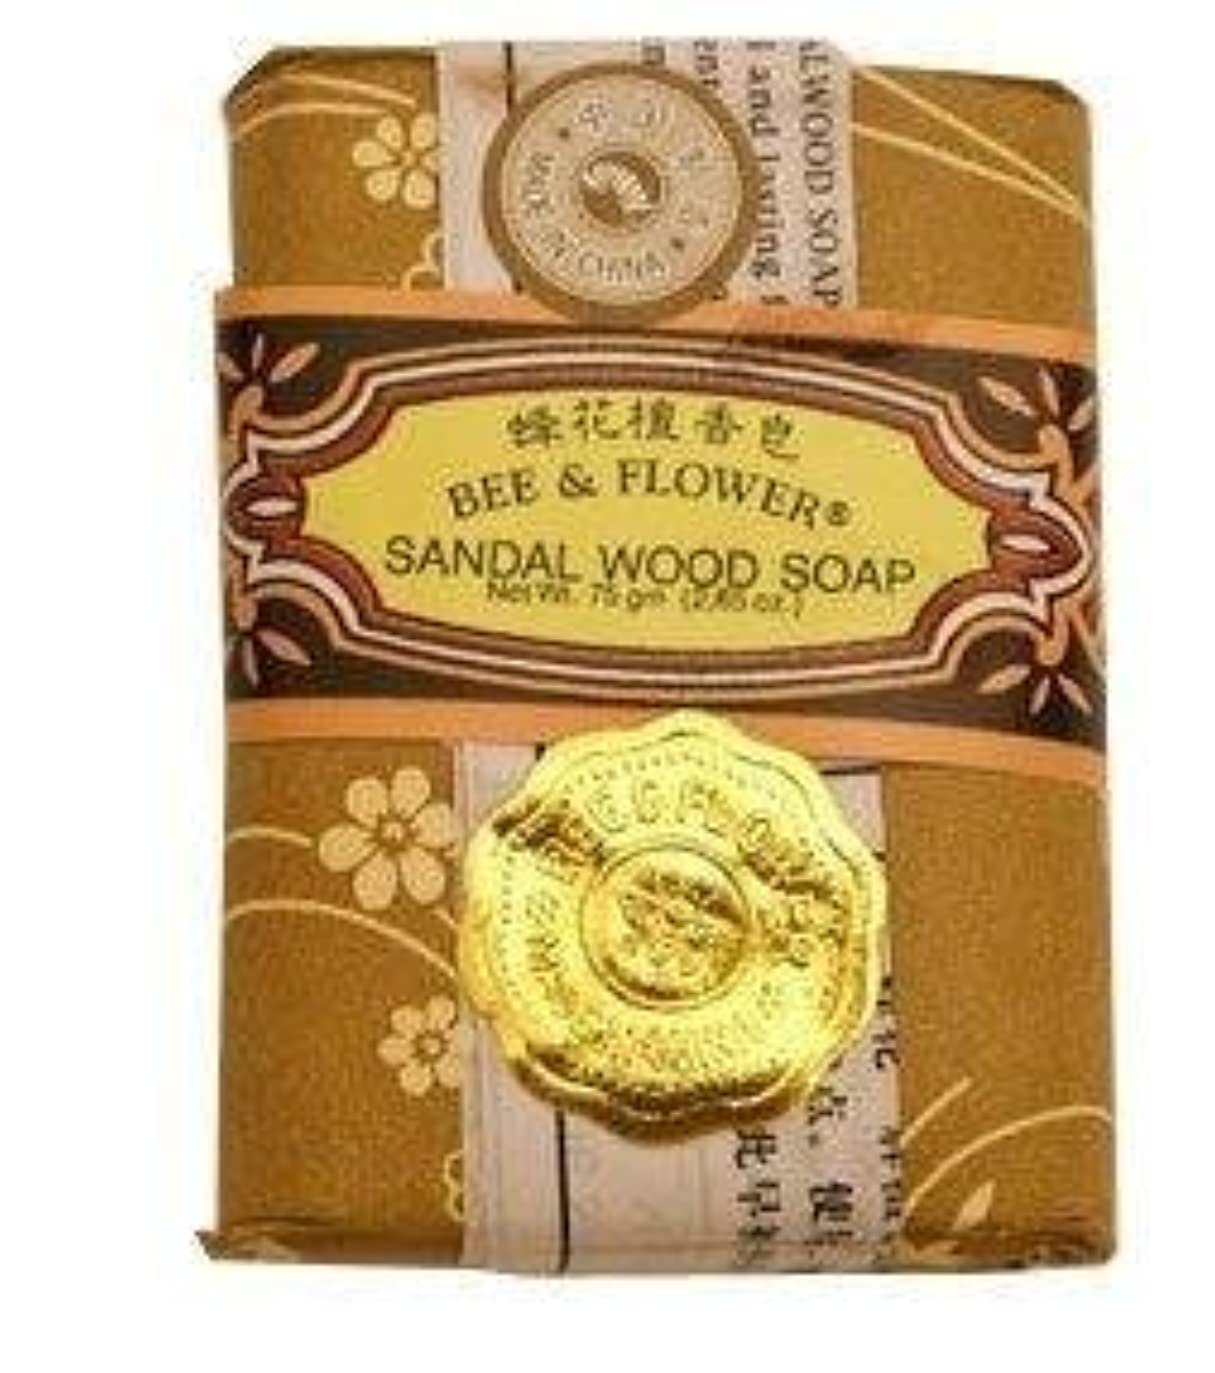 眼ピック手数料Bee And Flower Sandal Wood Bar Soap 2.65 Ounce - 12 per case. [並行輸入品]